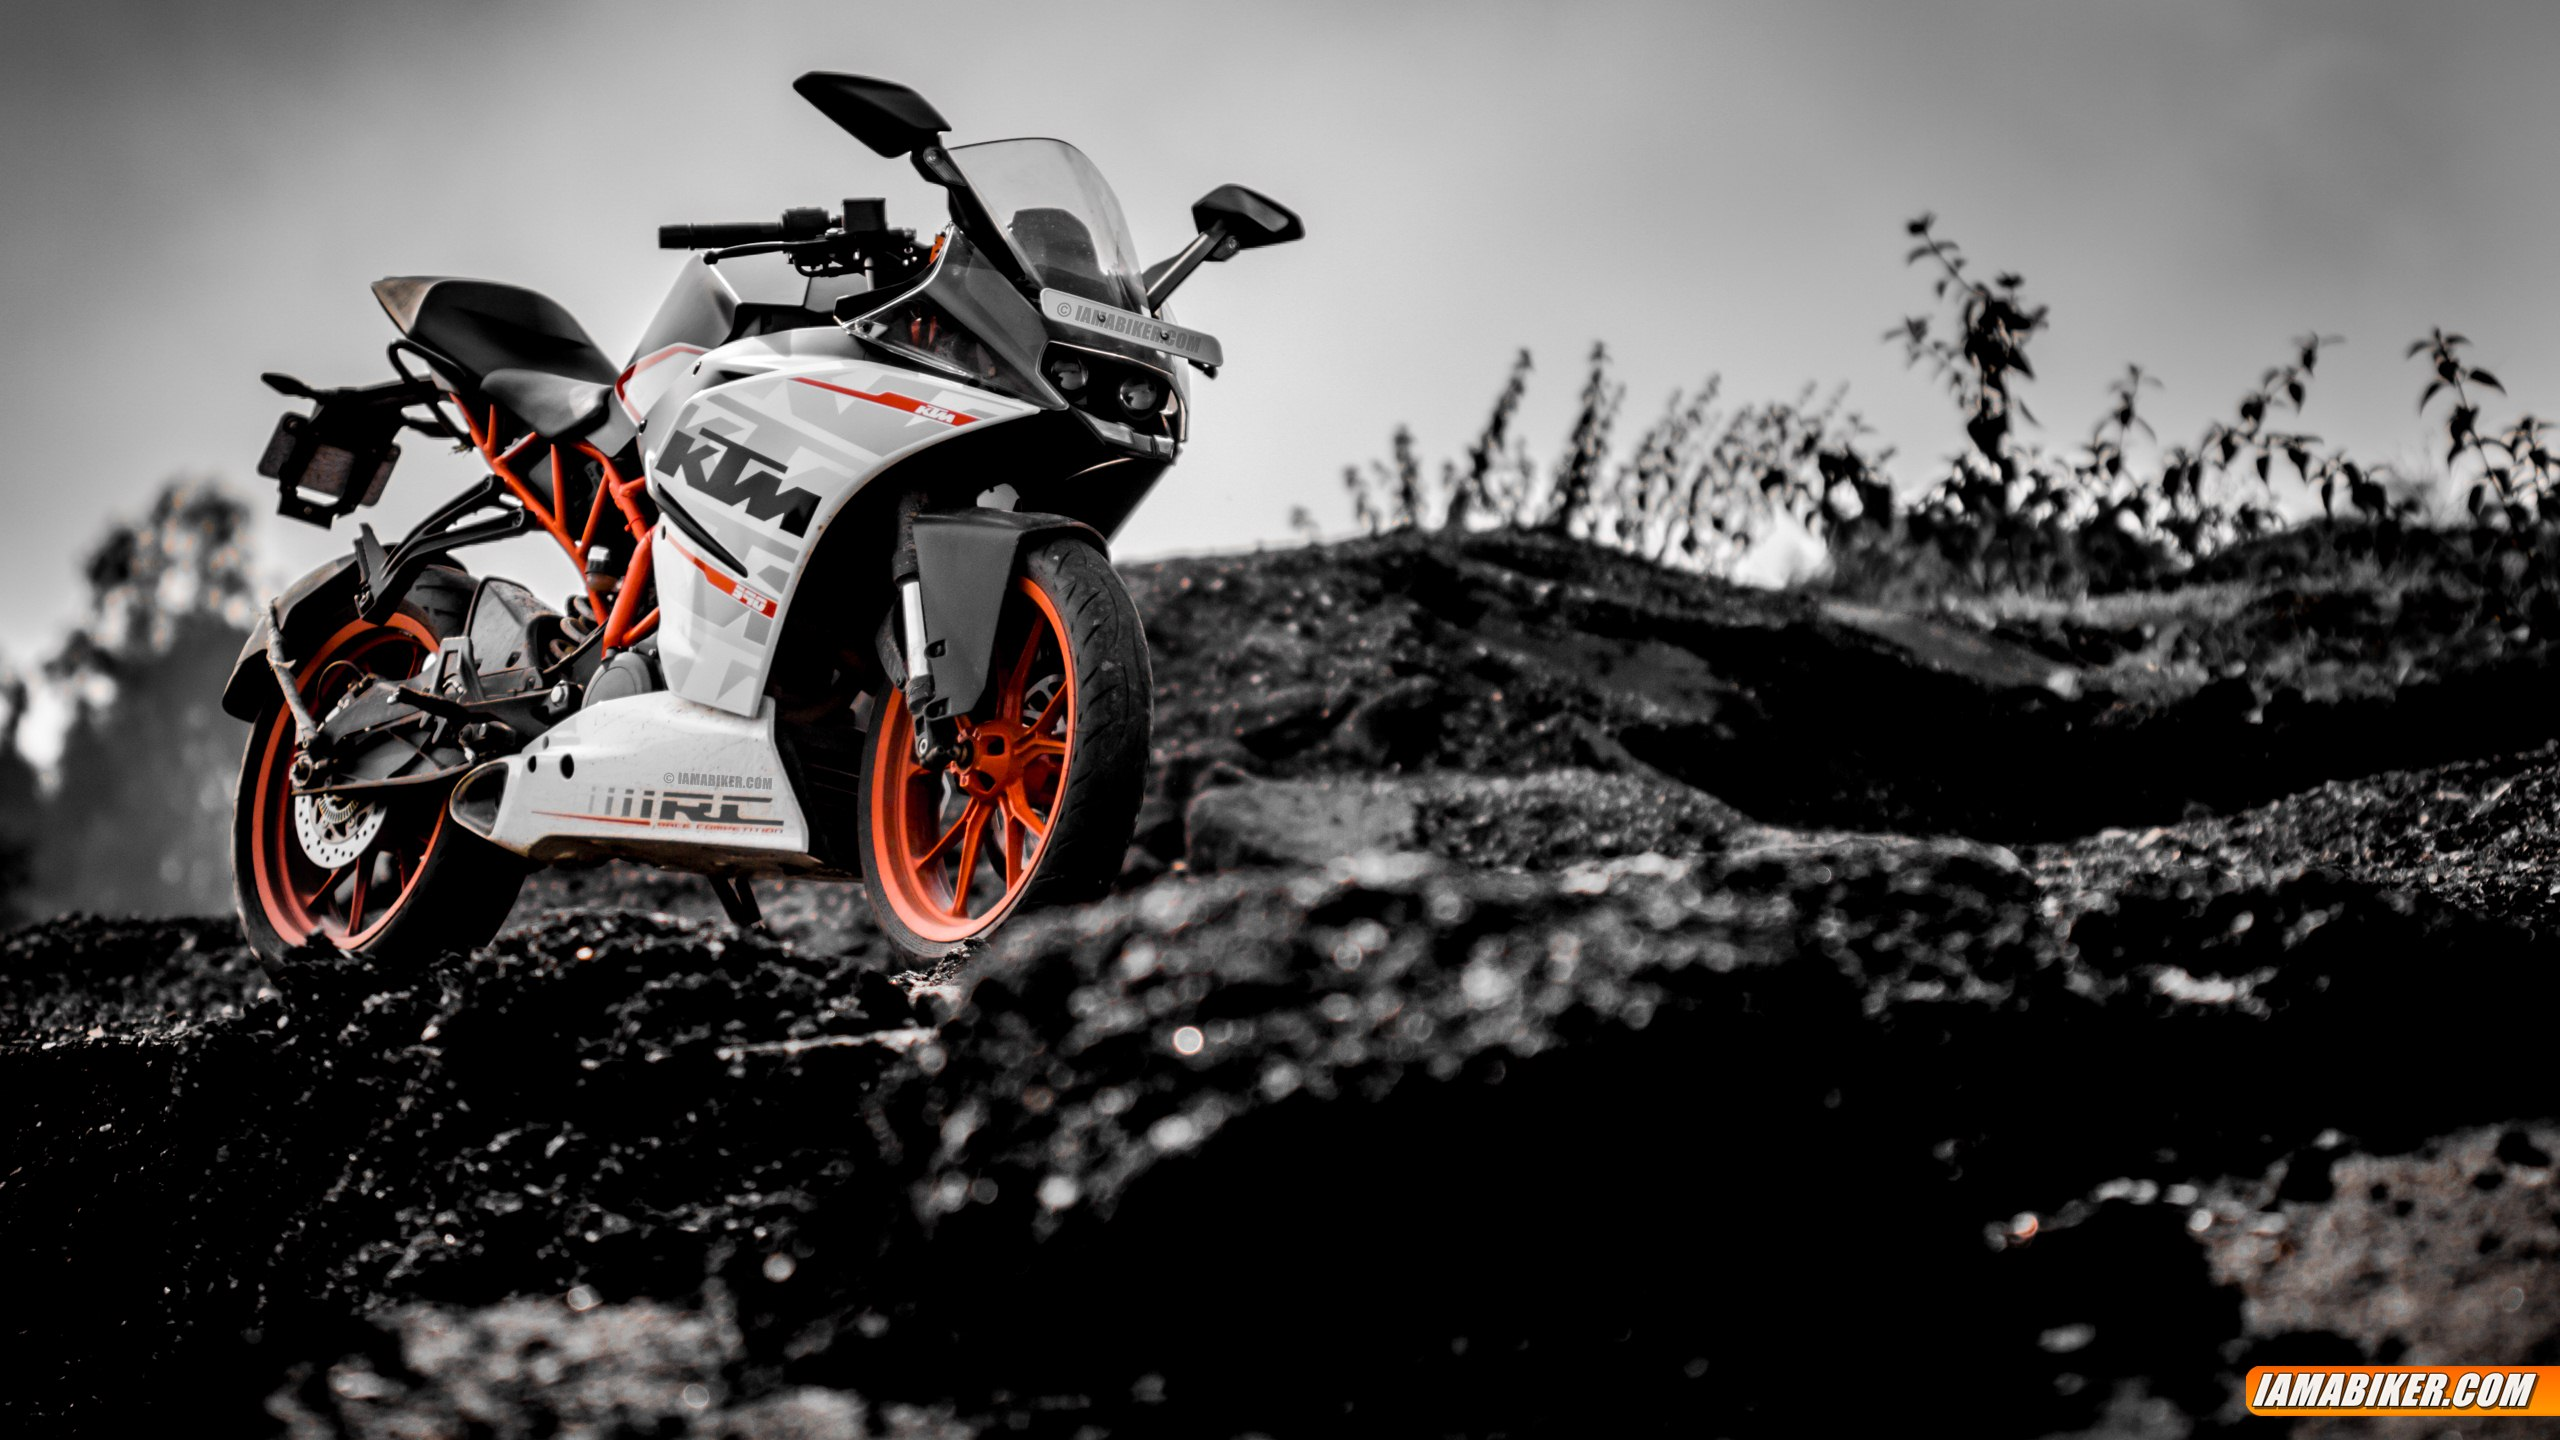 Ktm motorcycles hd wallpapers free wallaper downloads ktm sport - Ktm Rc 390 Wallpapers 6